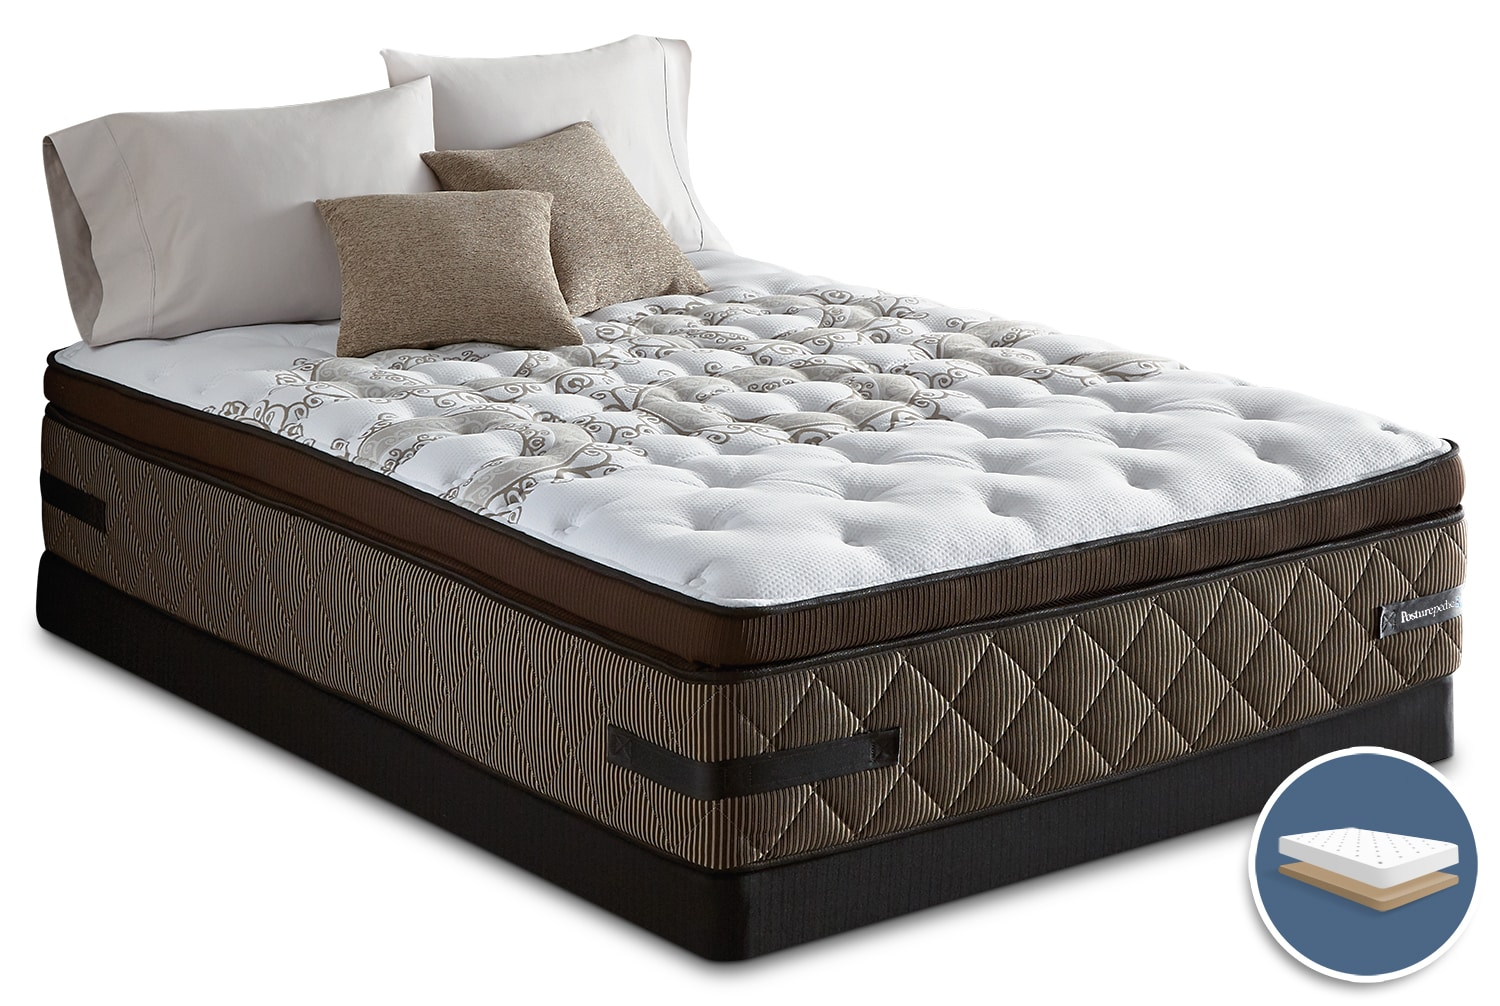 Mattresses and Bedding - Sealy Crown Jewel Sunsera Euro Pillow-Top Firm Low-Profile Full Mattress Set